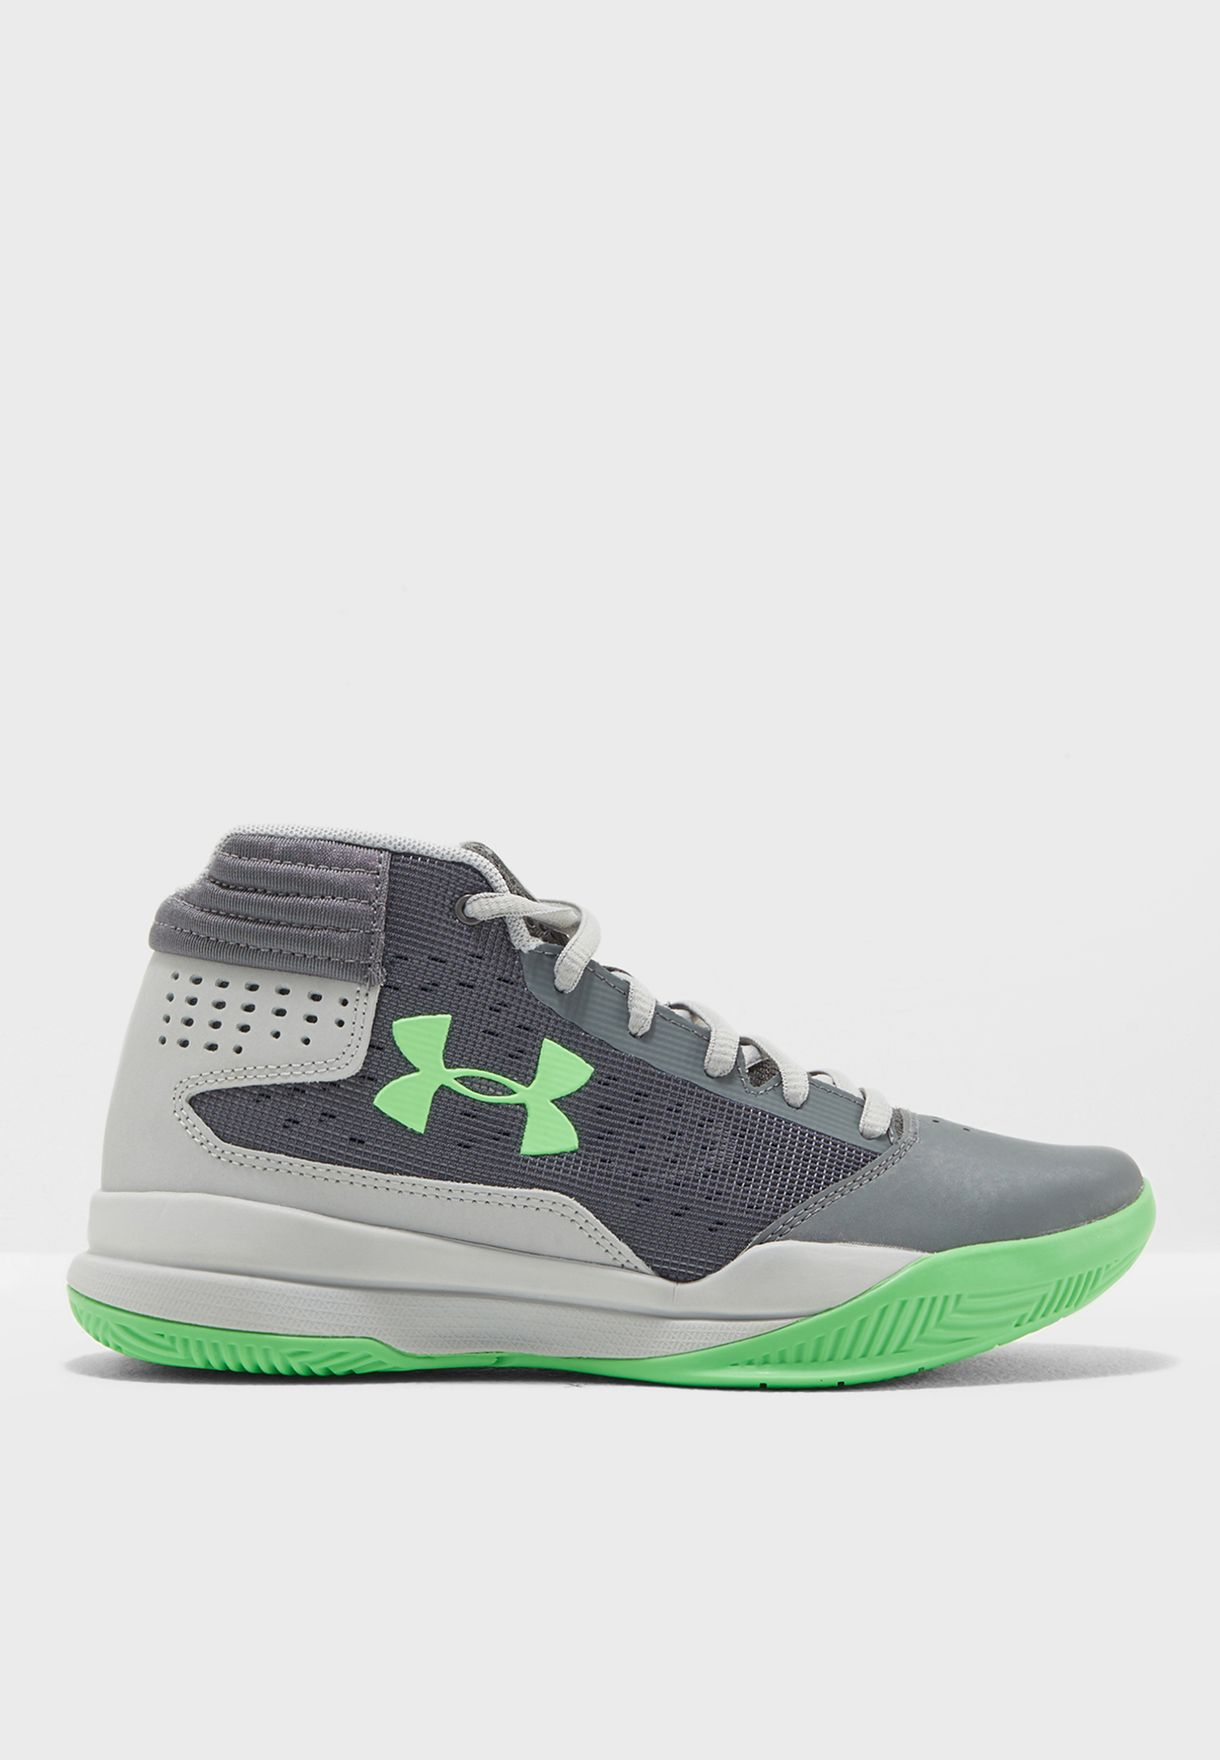 a8f3df03ae9 Shop Under Armour grey Jet 2017 GS 1296009-100 for Kids in UAE ...